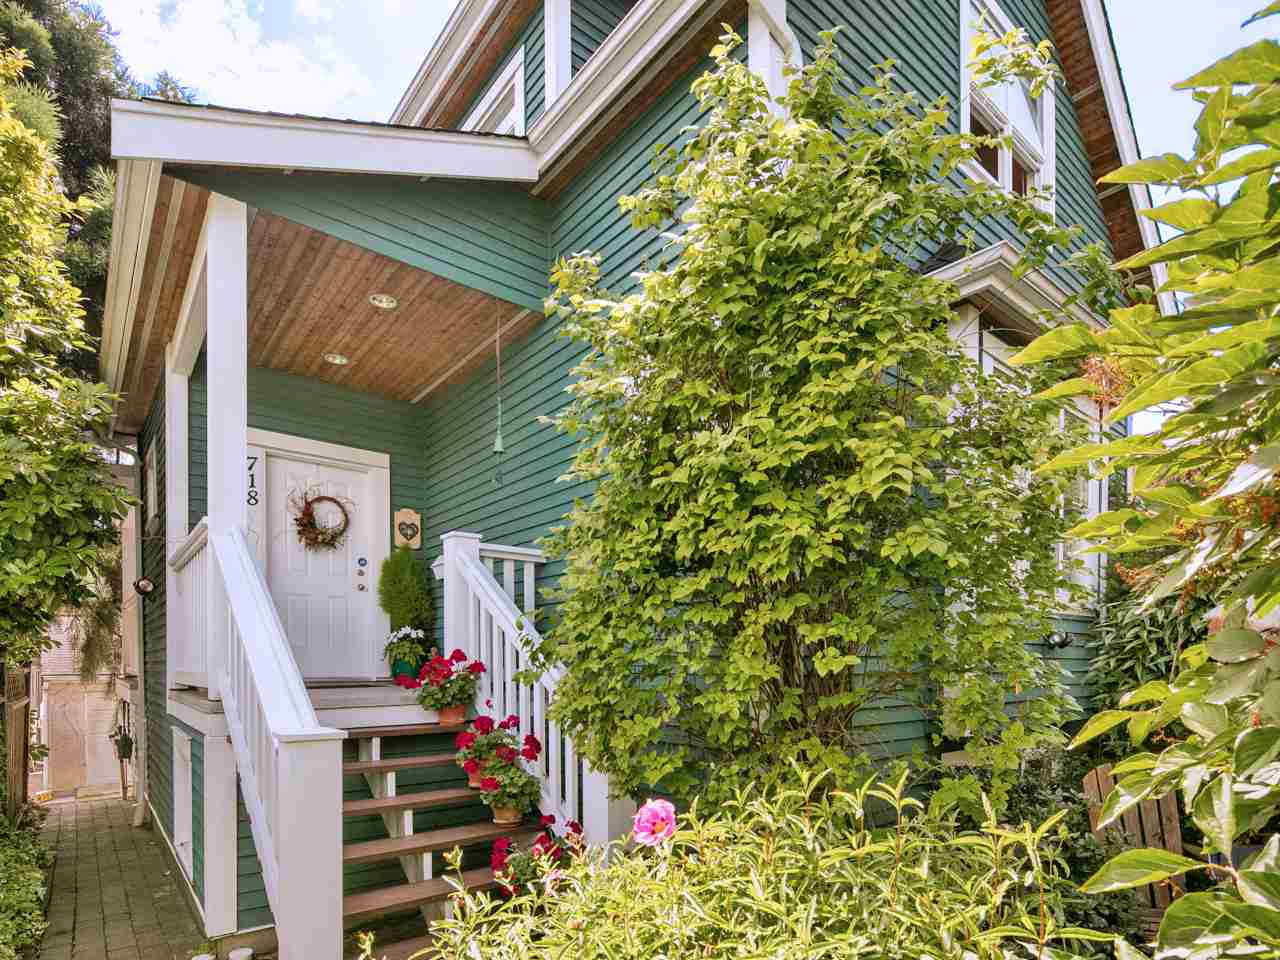 Main Photo: 718 UNION Street in Vancouver: Mount Pleasant VE Townhouse for sale (Vancouver East)  : MLS(r) # R2092007